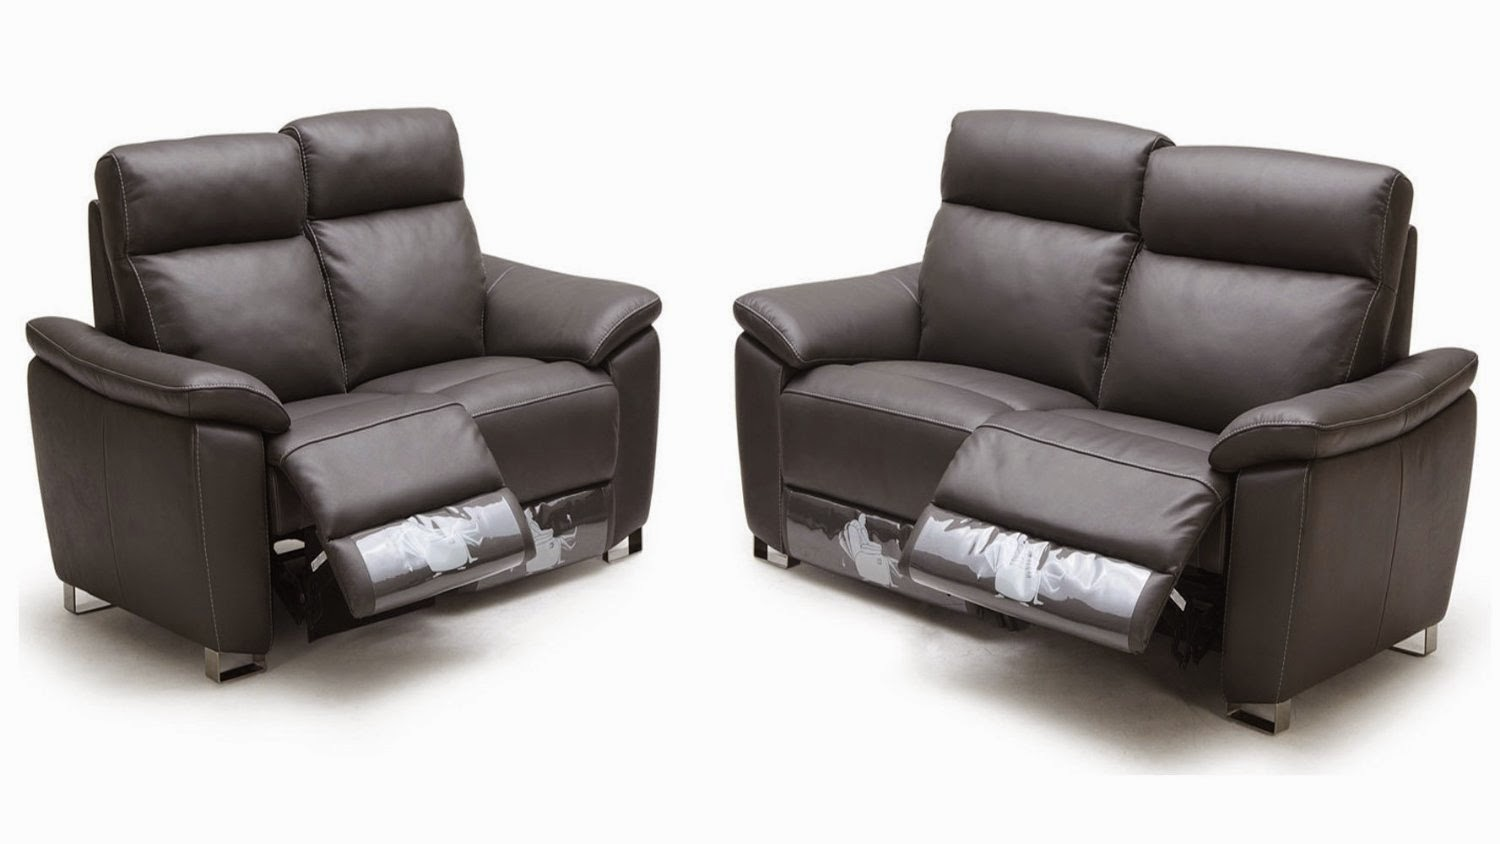 Best reclining sofa for the money two seater reclining Reclining leather sofa and loveseat